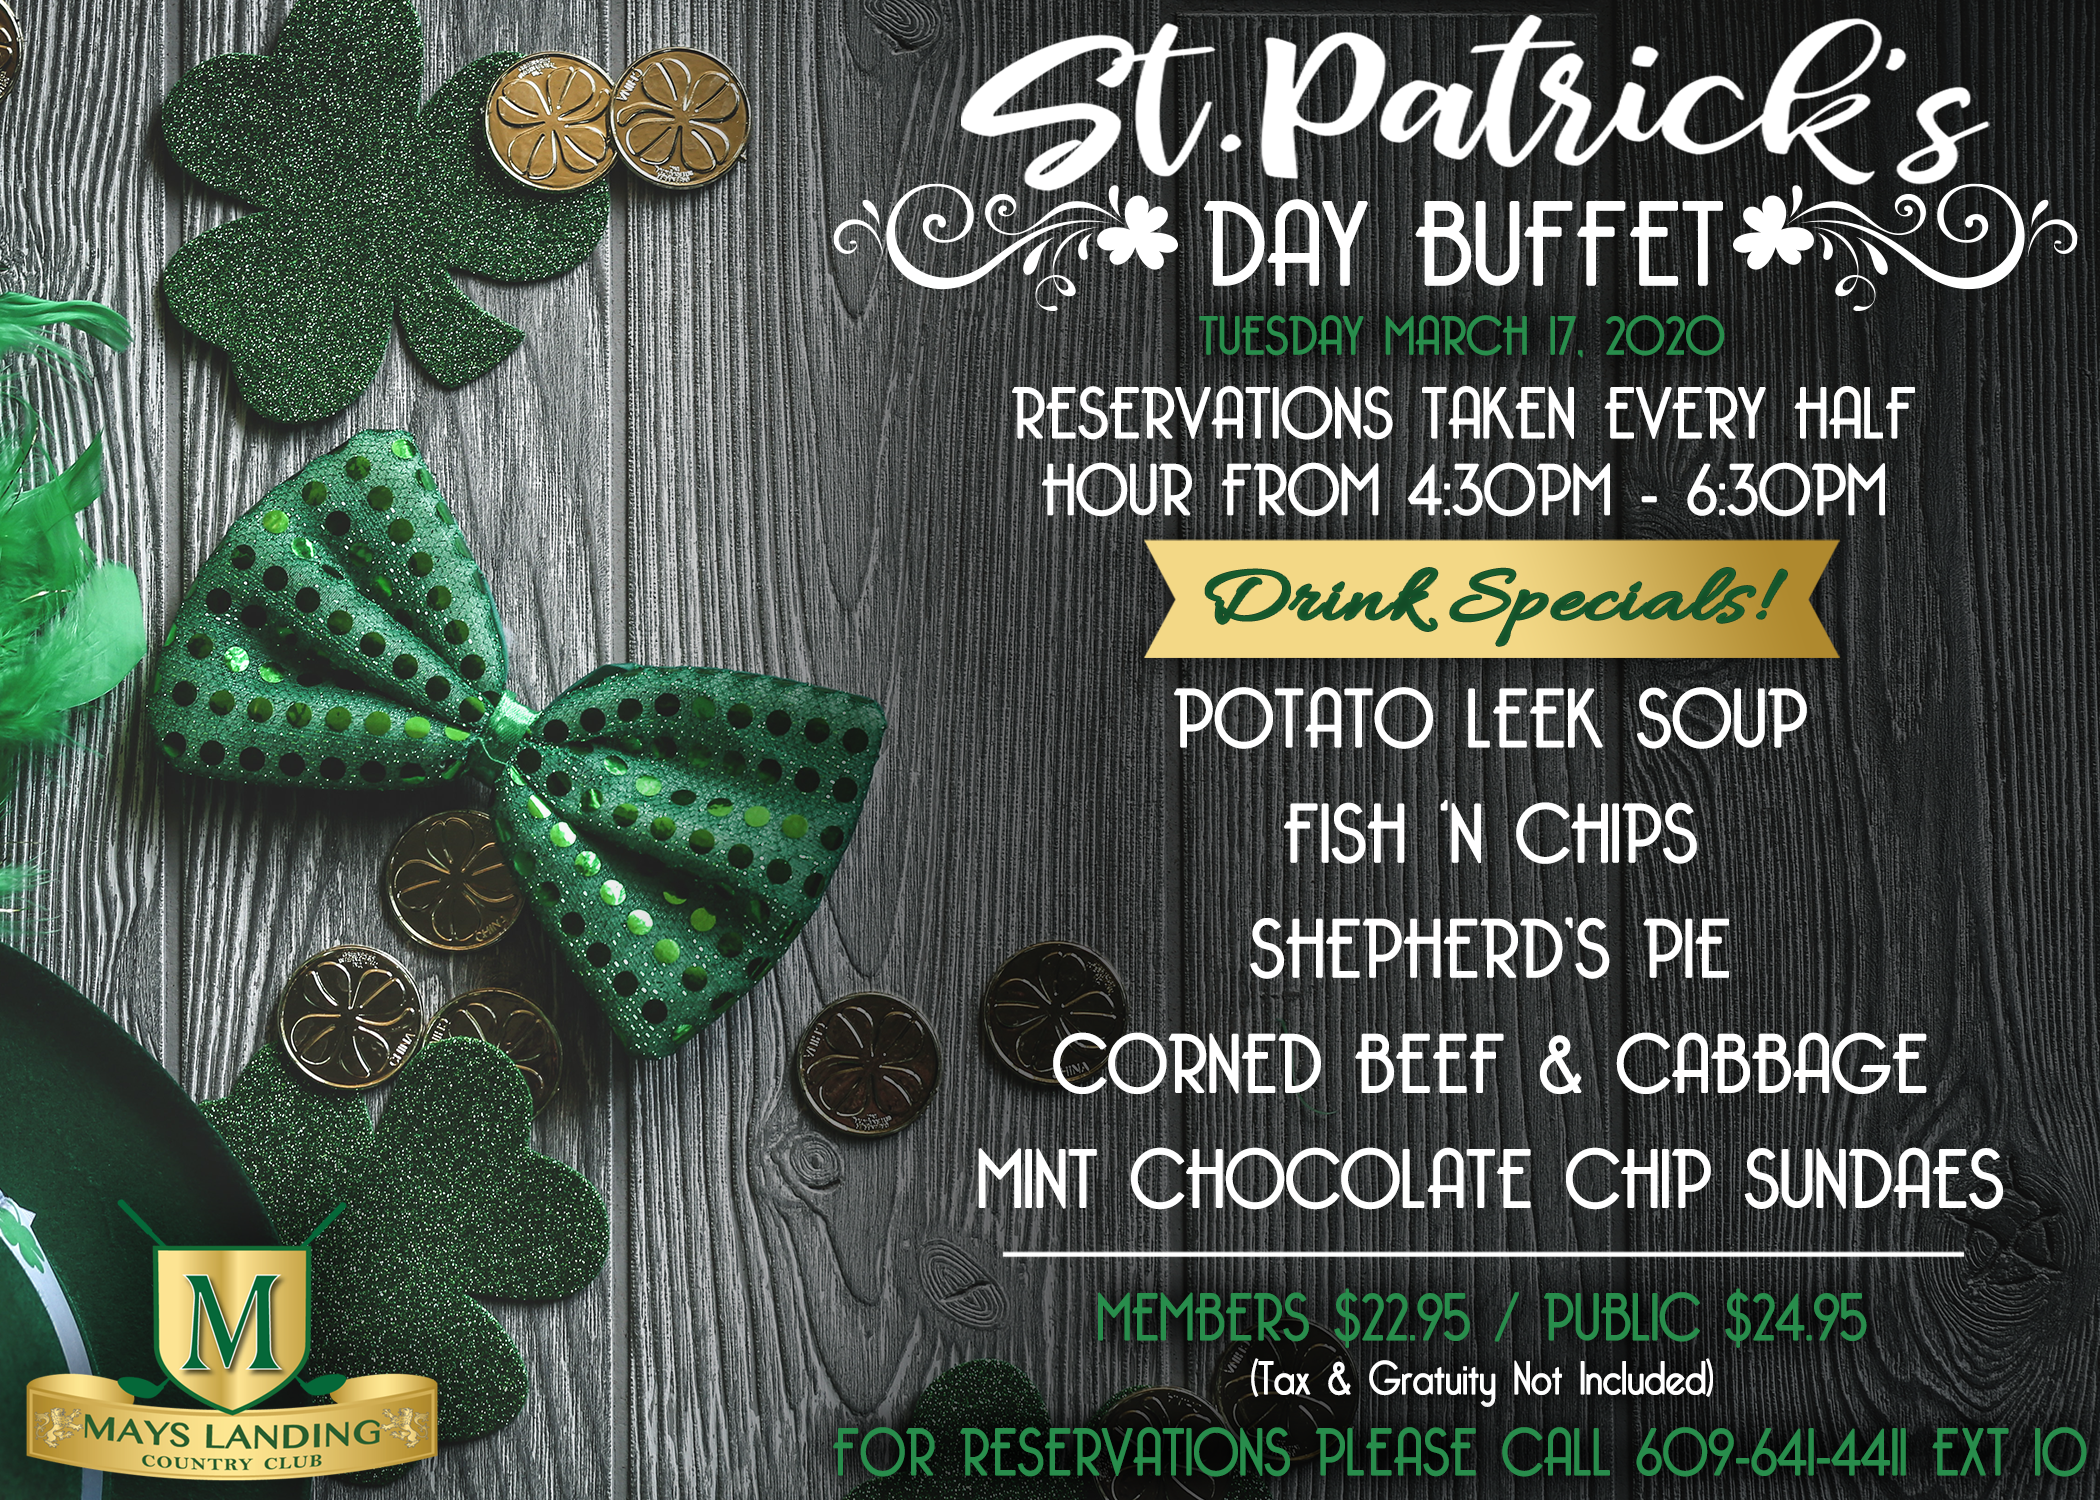 St. Patrick's Day Buffet. Tuesday March 17, 2020. Reservations Taken Every Half Hour From 4:30pm-6:30pm. Drink Specials! Potato Leek Soup, Fish 'N Chips, Shepherd's Pie, Corned Beef & Cabbage, Mint Chocolate Chip Sundaes. Members $22.95 / Public $24.95 (Tax & Gratuity Not Included) For Reservations Please Call 609-641-4411 Ext 10. Mays Landing Country Club Logo.